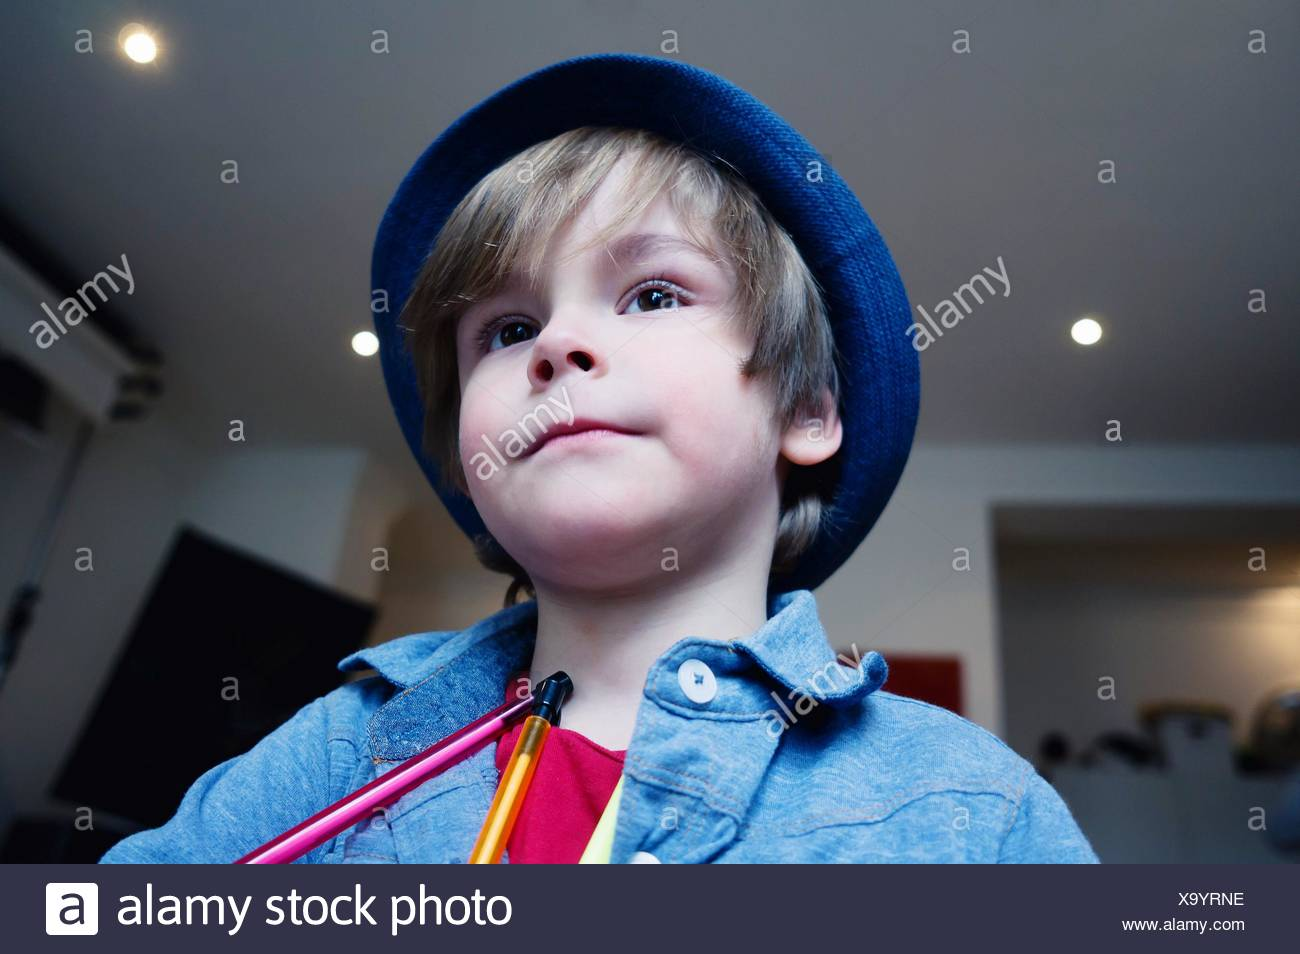 Low Angle View Of Cute Boy With Pencil In House - Stock Image